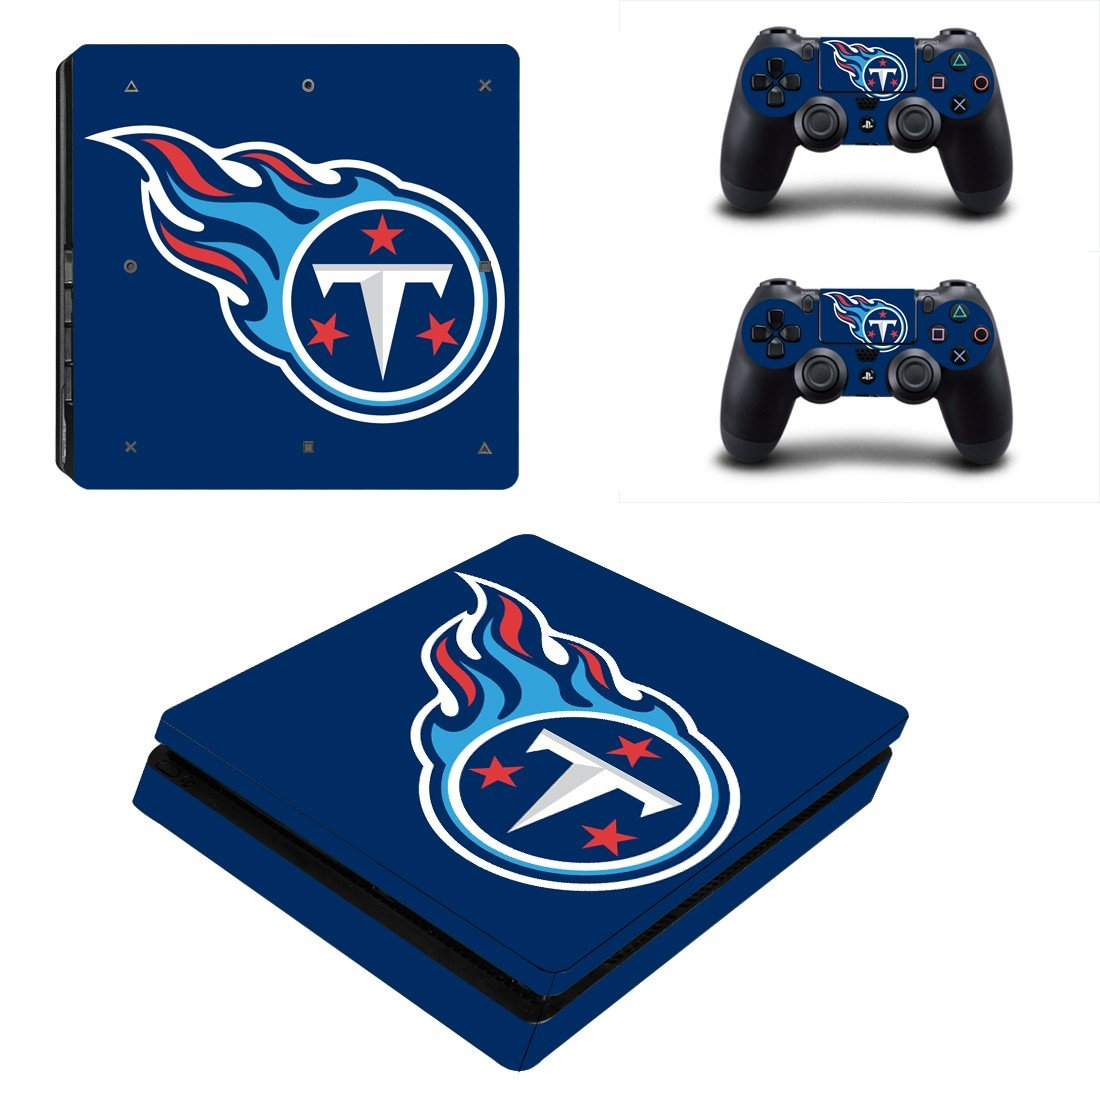 Tennessee titans Play Station 4 slim skin decal for console and 2 controllers